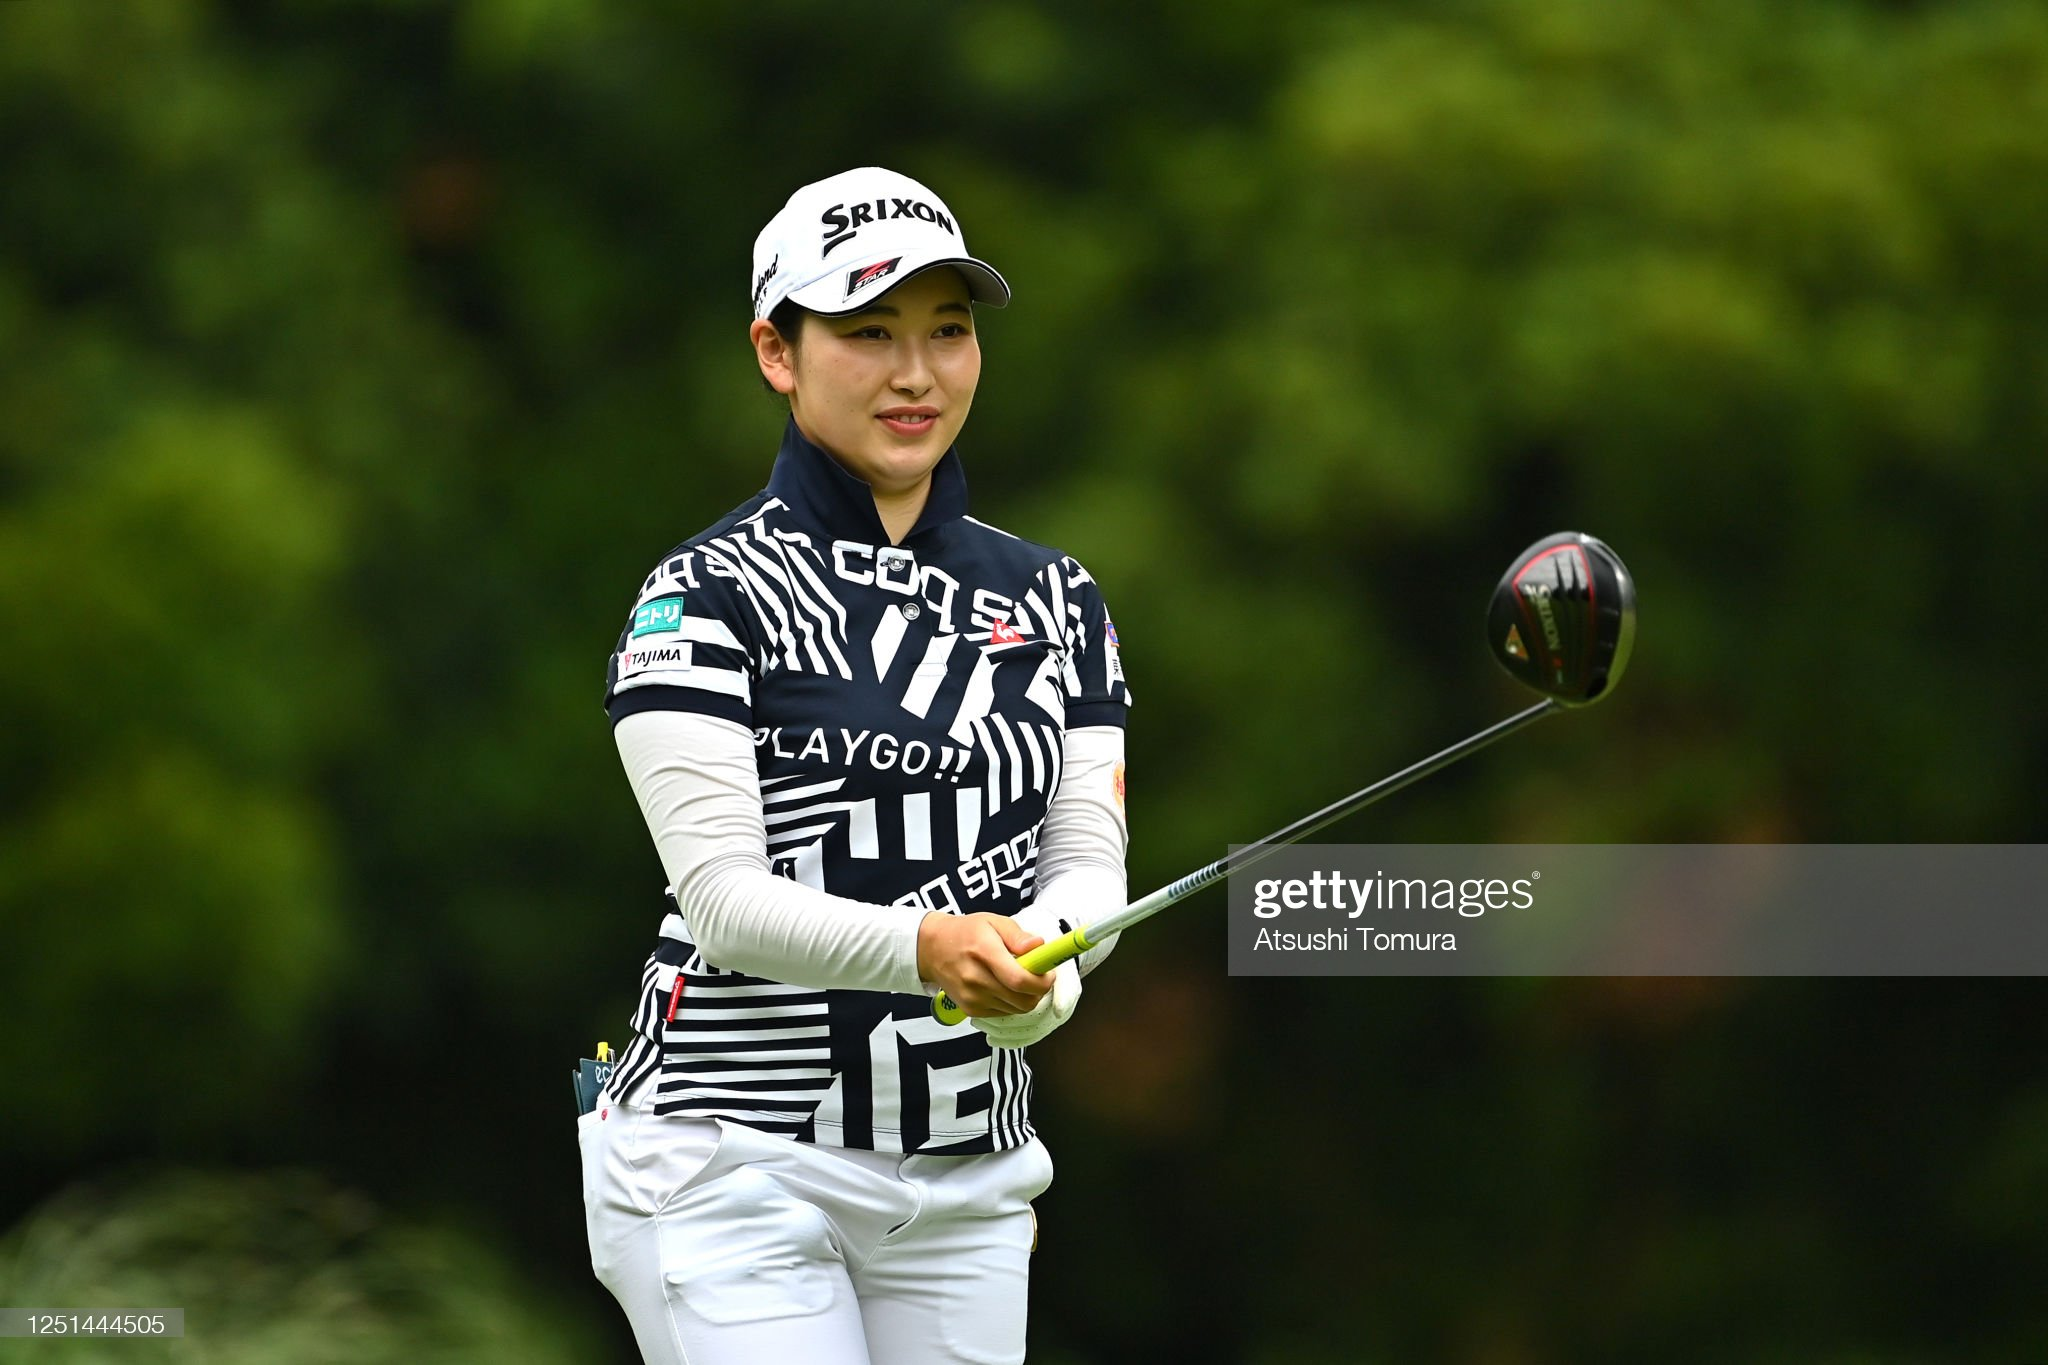 https://media.gettyimages.com/photos/sakura-koiwai-of-japan-prepares-for-her-tee-shot-on-the-3rd-hole-of-picture-id1251444505?s=2048x2048